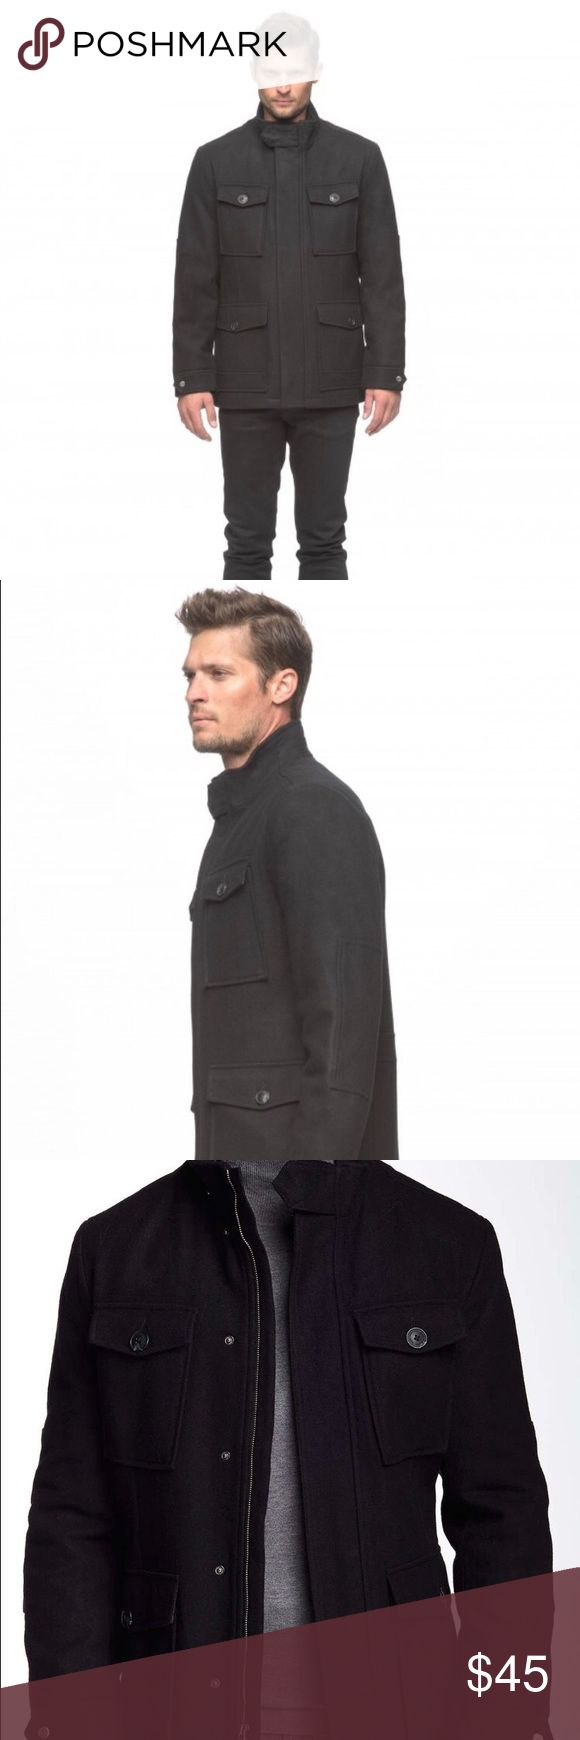 New Andrew Marc  Men's Coat. Size L Brand new Andrew Marc Military style coat. It can be worn with a suit or jeans. Dress it up or down. It will definitely keep you warm this upcoming winter. It is a regular fit cut with a little extra room in the chest and body for a comfortable fit. Don't miss out! Pet free and smoke free home. Five star seller with less than one day shipping. Please no low ball offers. Thanks for shopping my closet!  😘 Andrew Marc Jackets & Coats